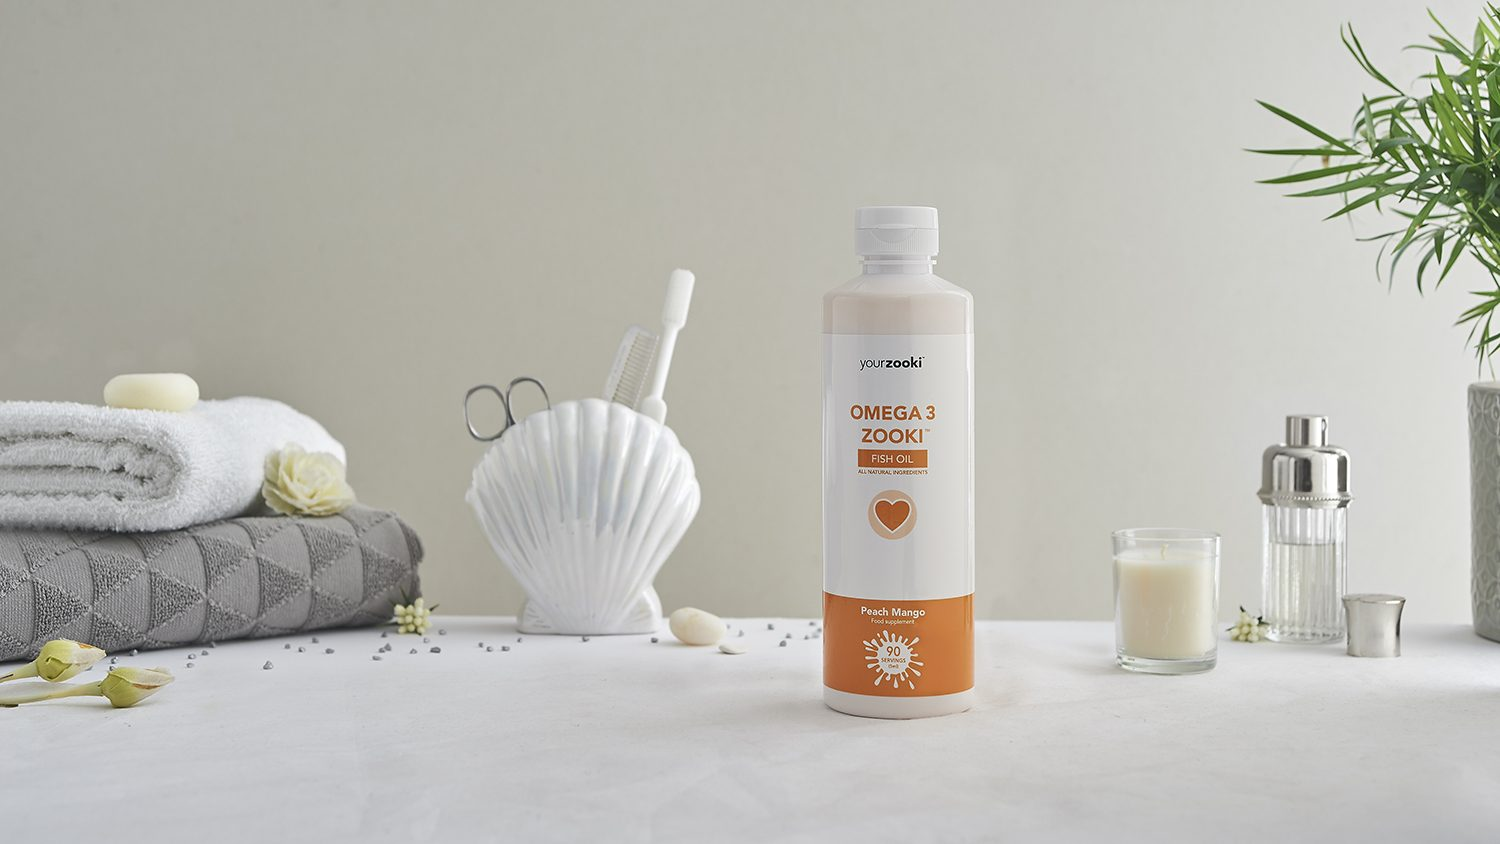 Apothecary product photograph vitamin C lifestyle setting